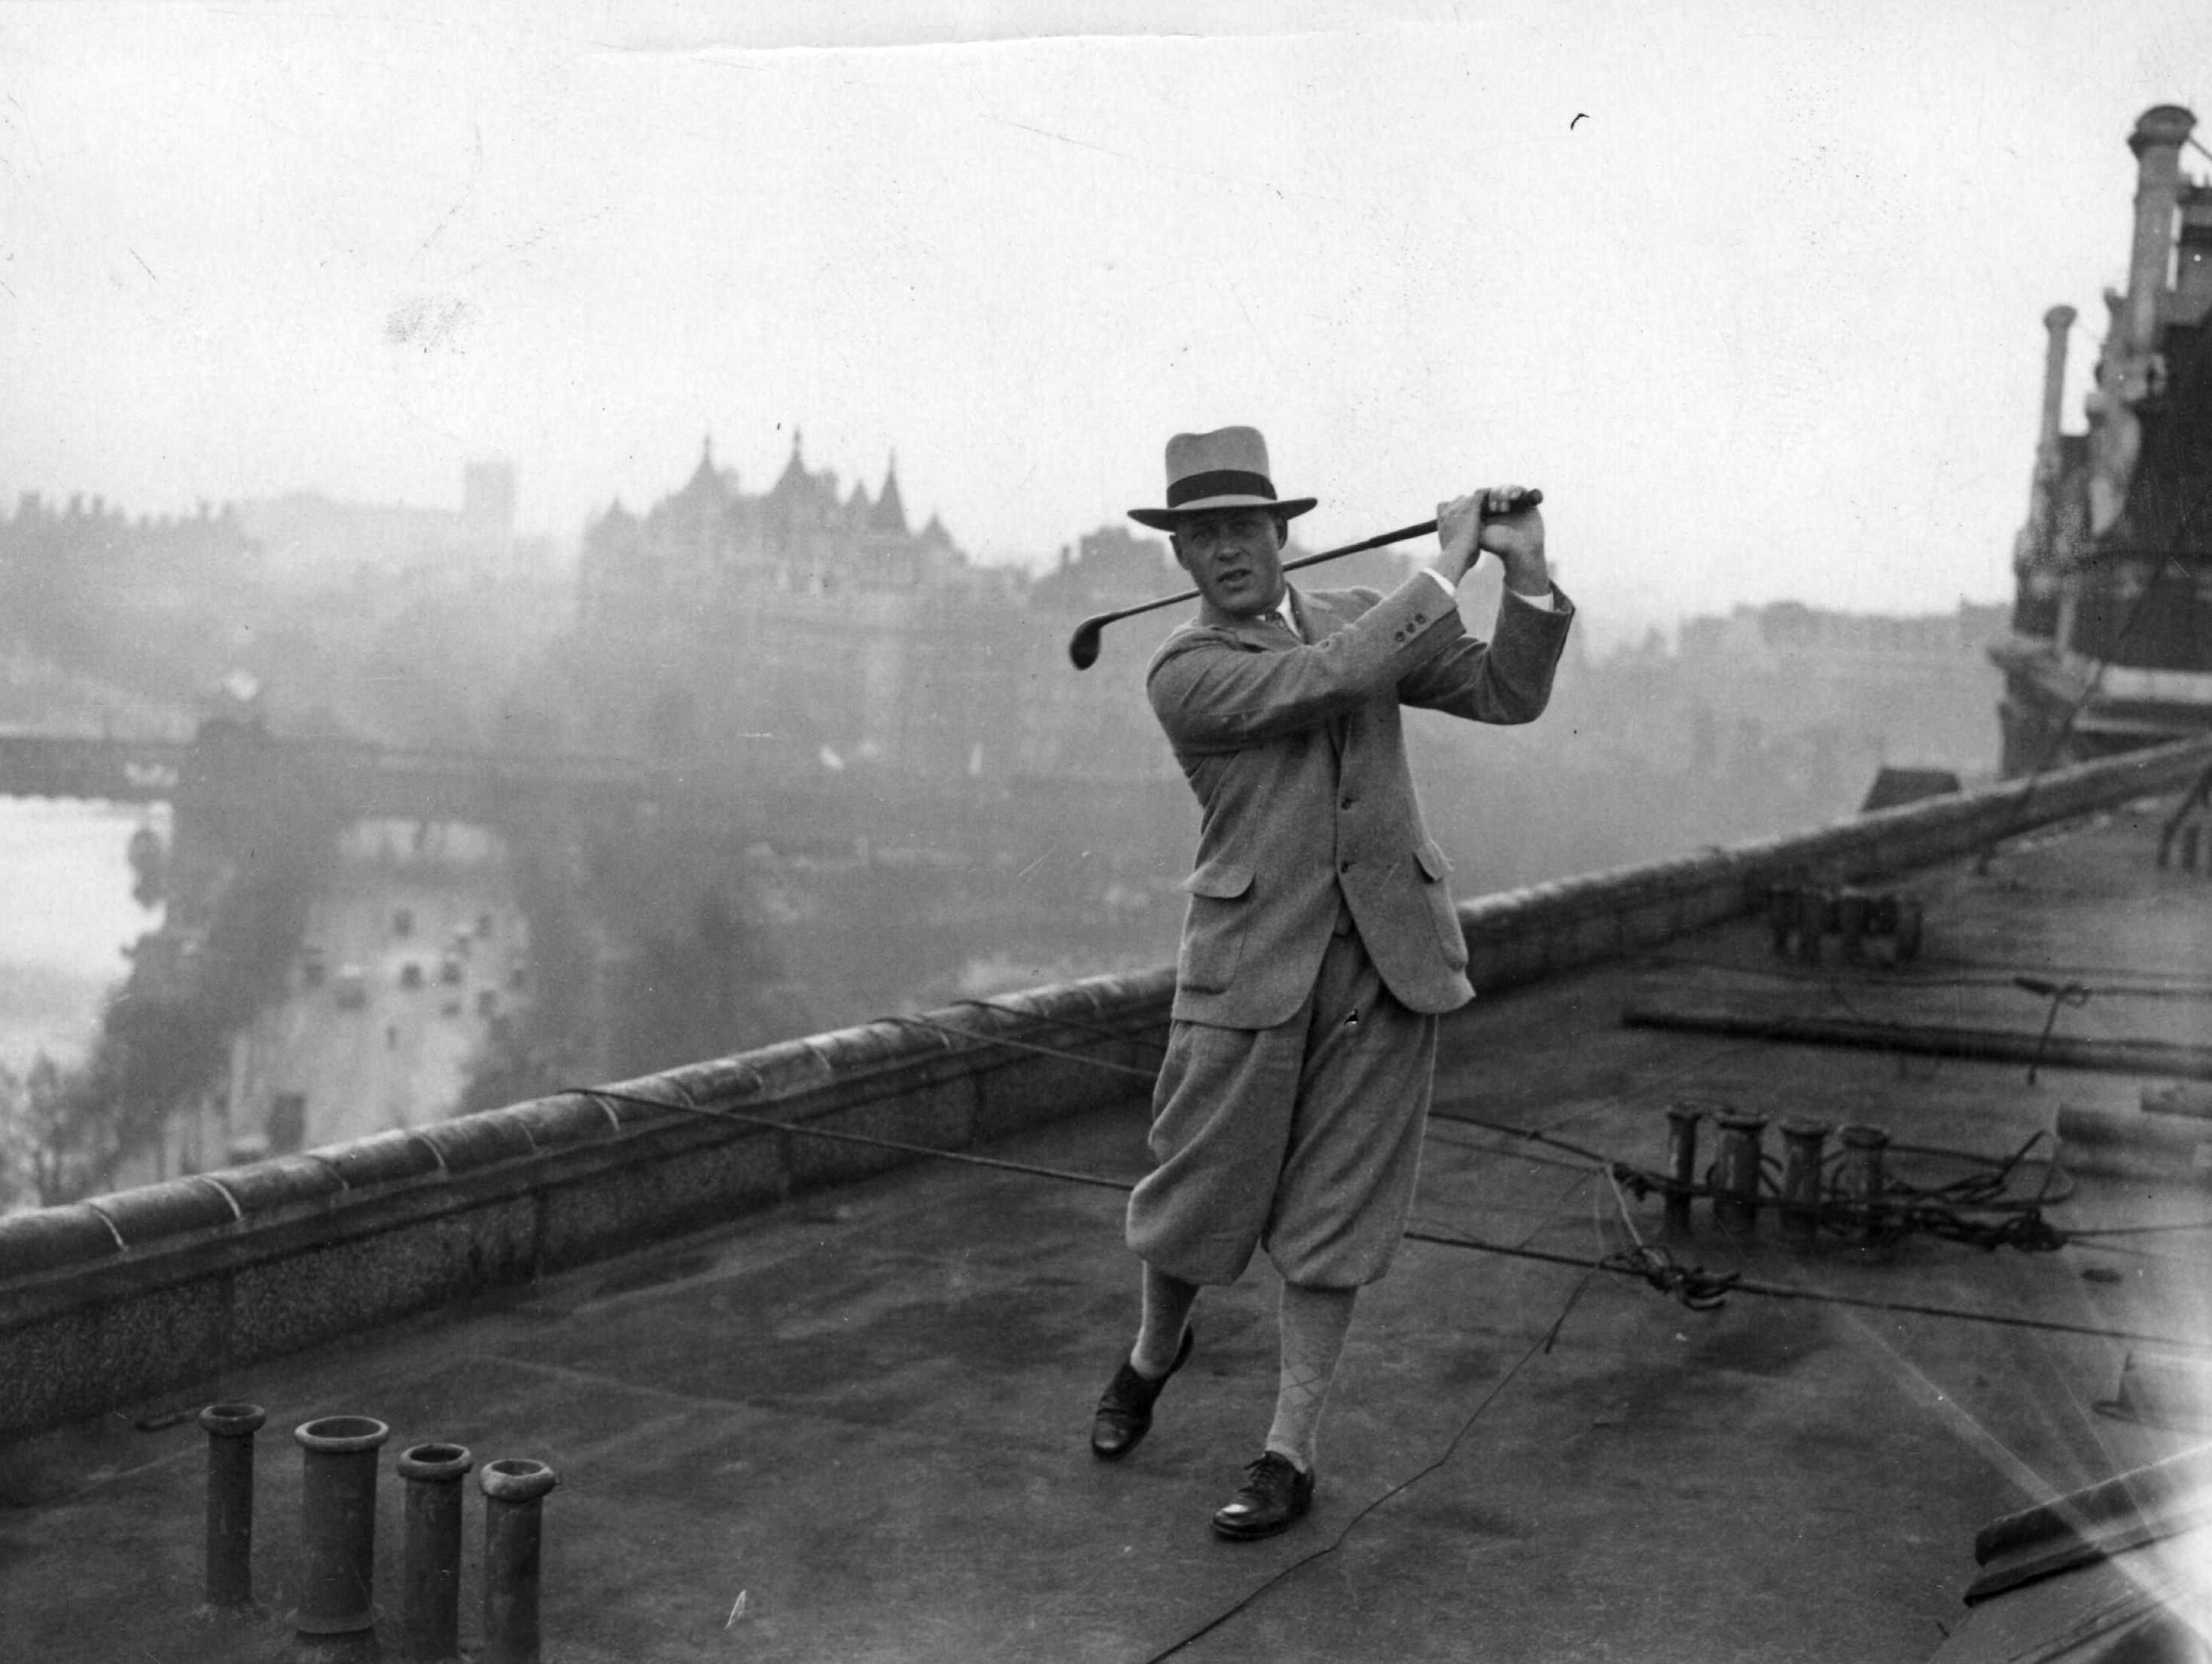 American golfer Bobby Jones practising his swing on the roof of the Savoy Hotel in London. (Photo by Topical Press Agency/Getty Images)